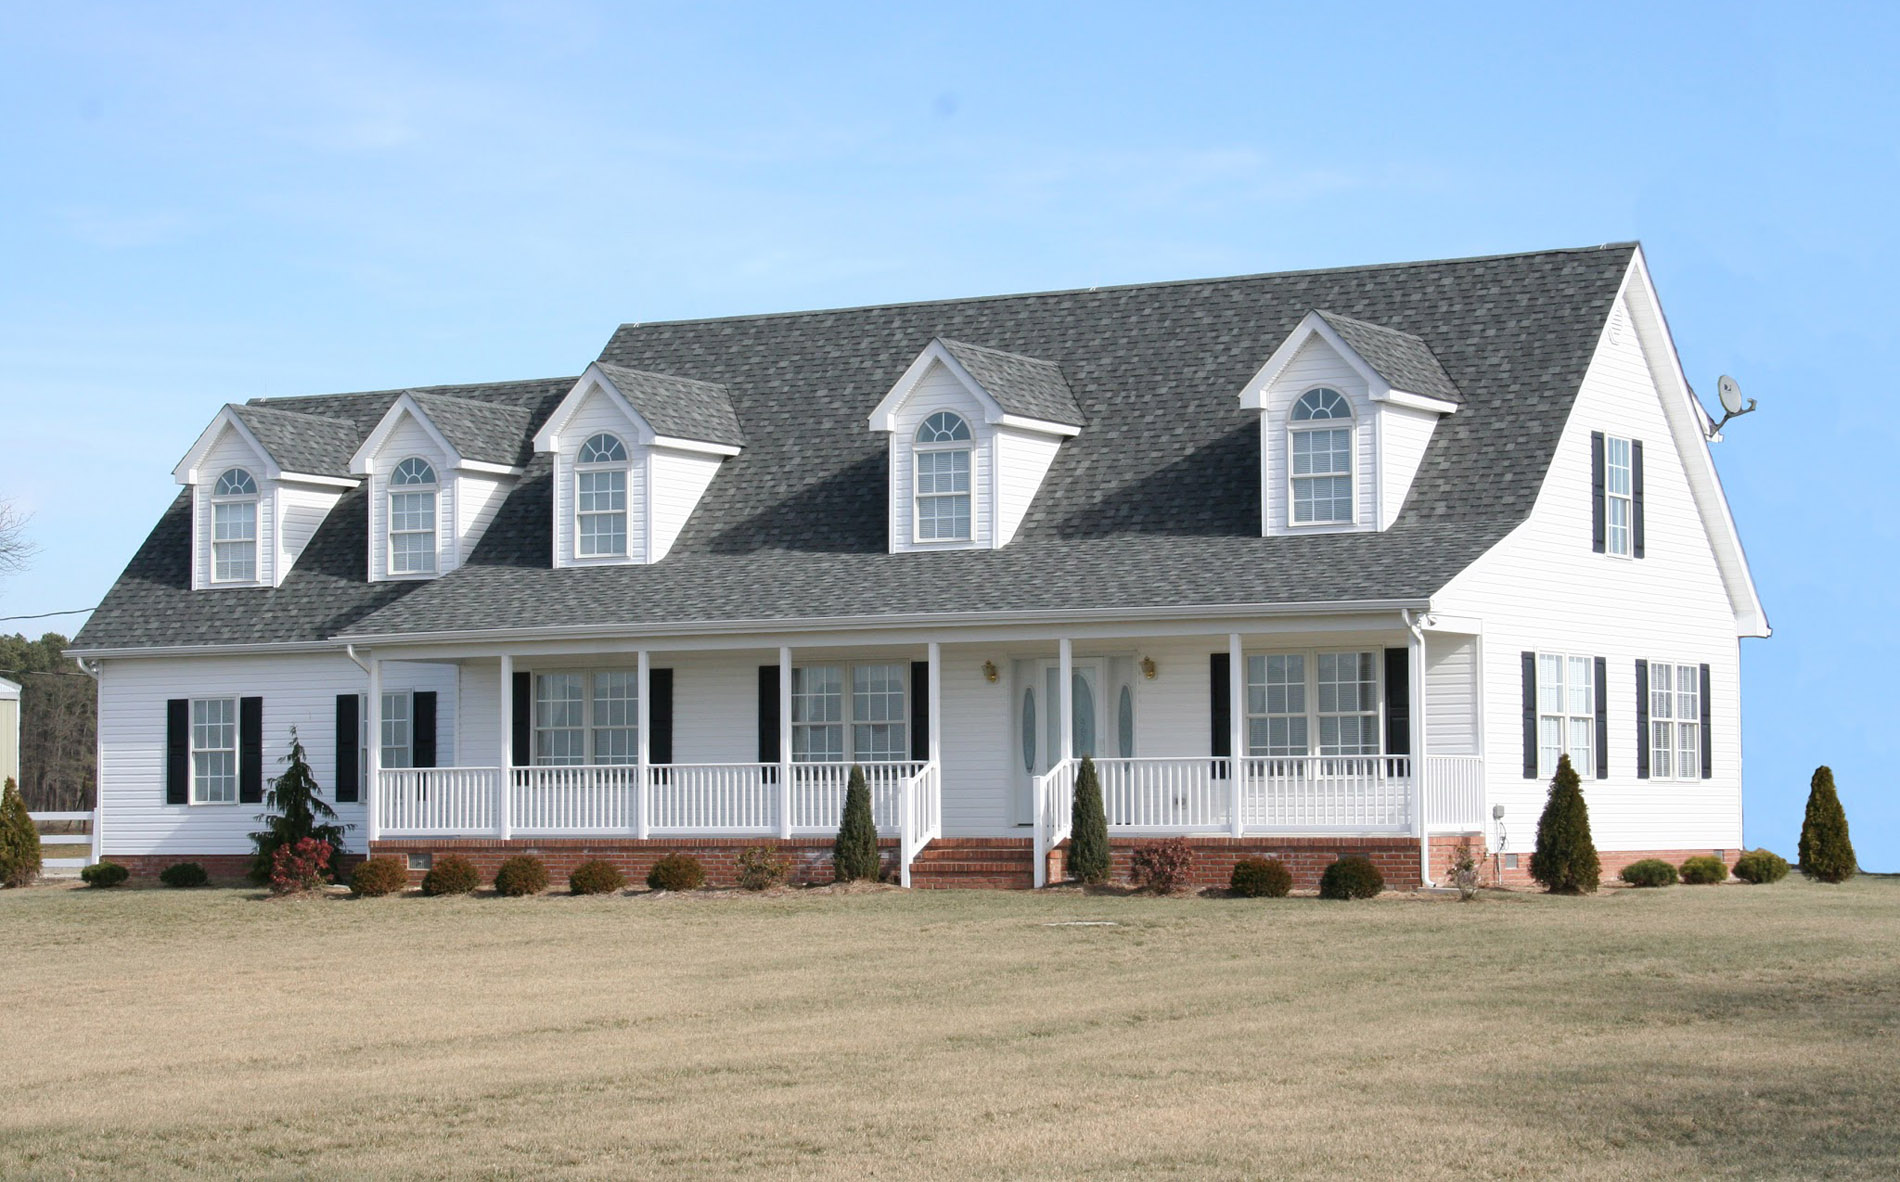 Traditional two-story home in Delmarva built by H&H Builders, Inc.